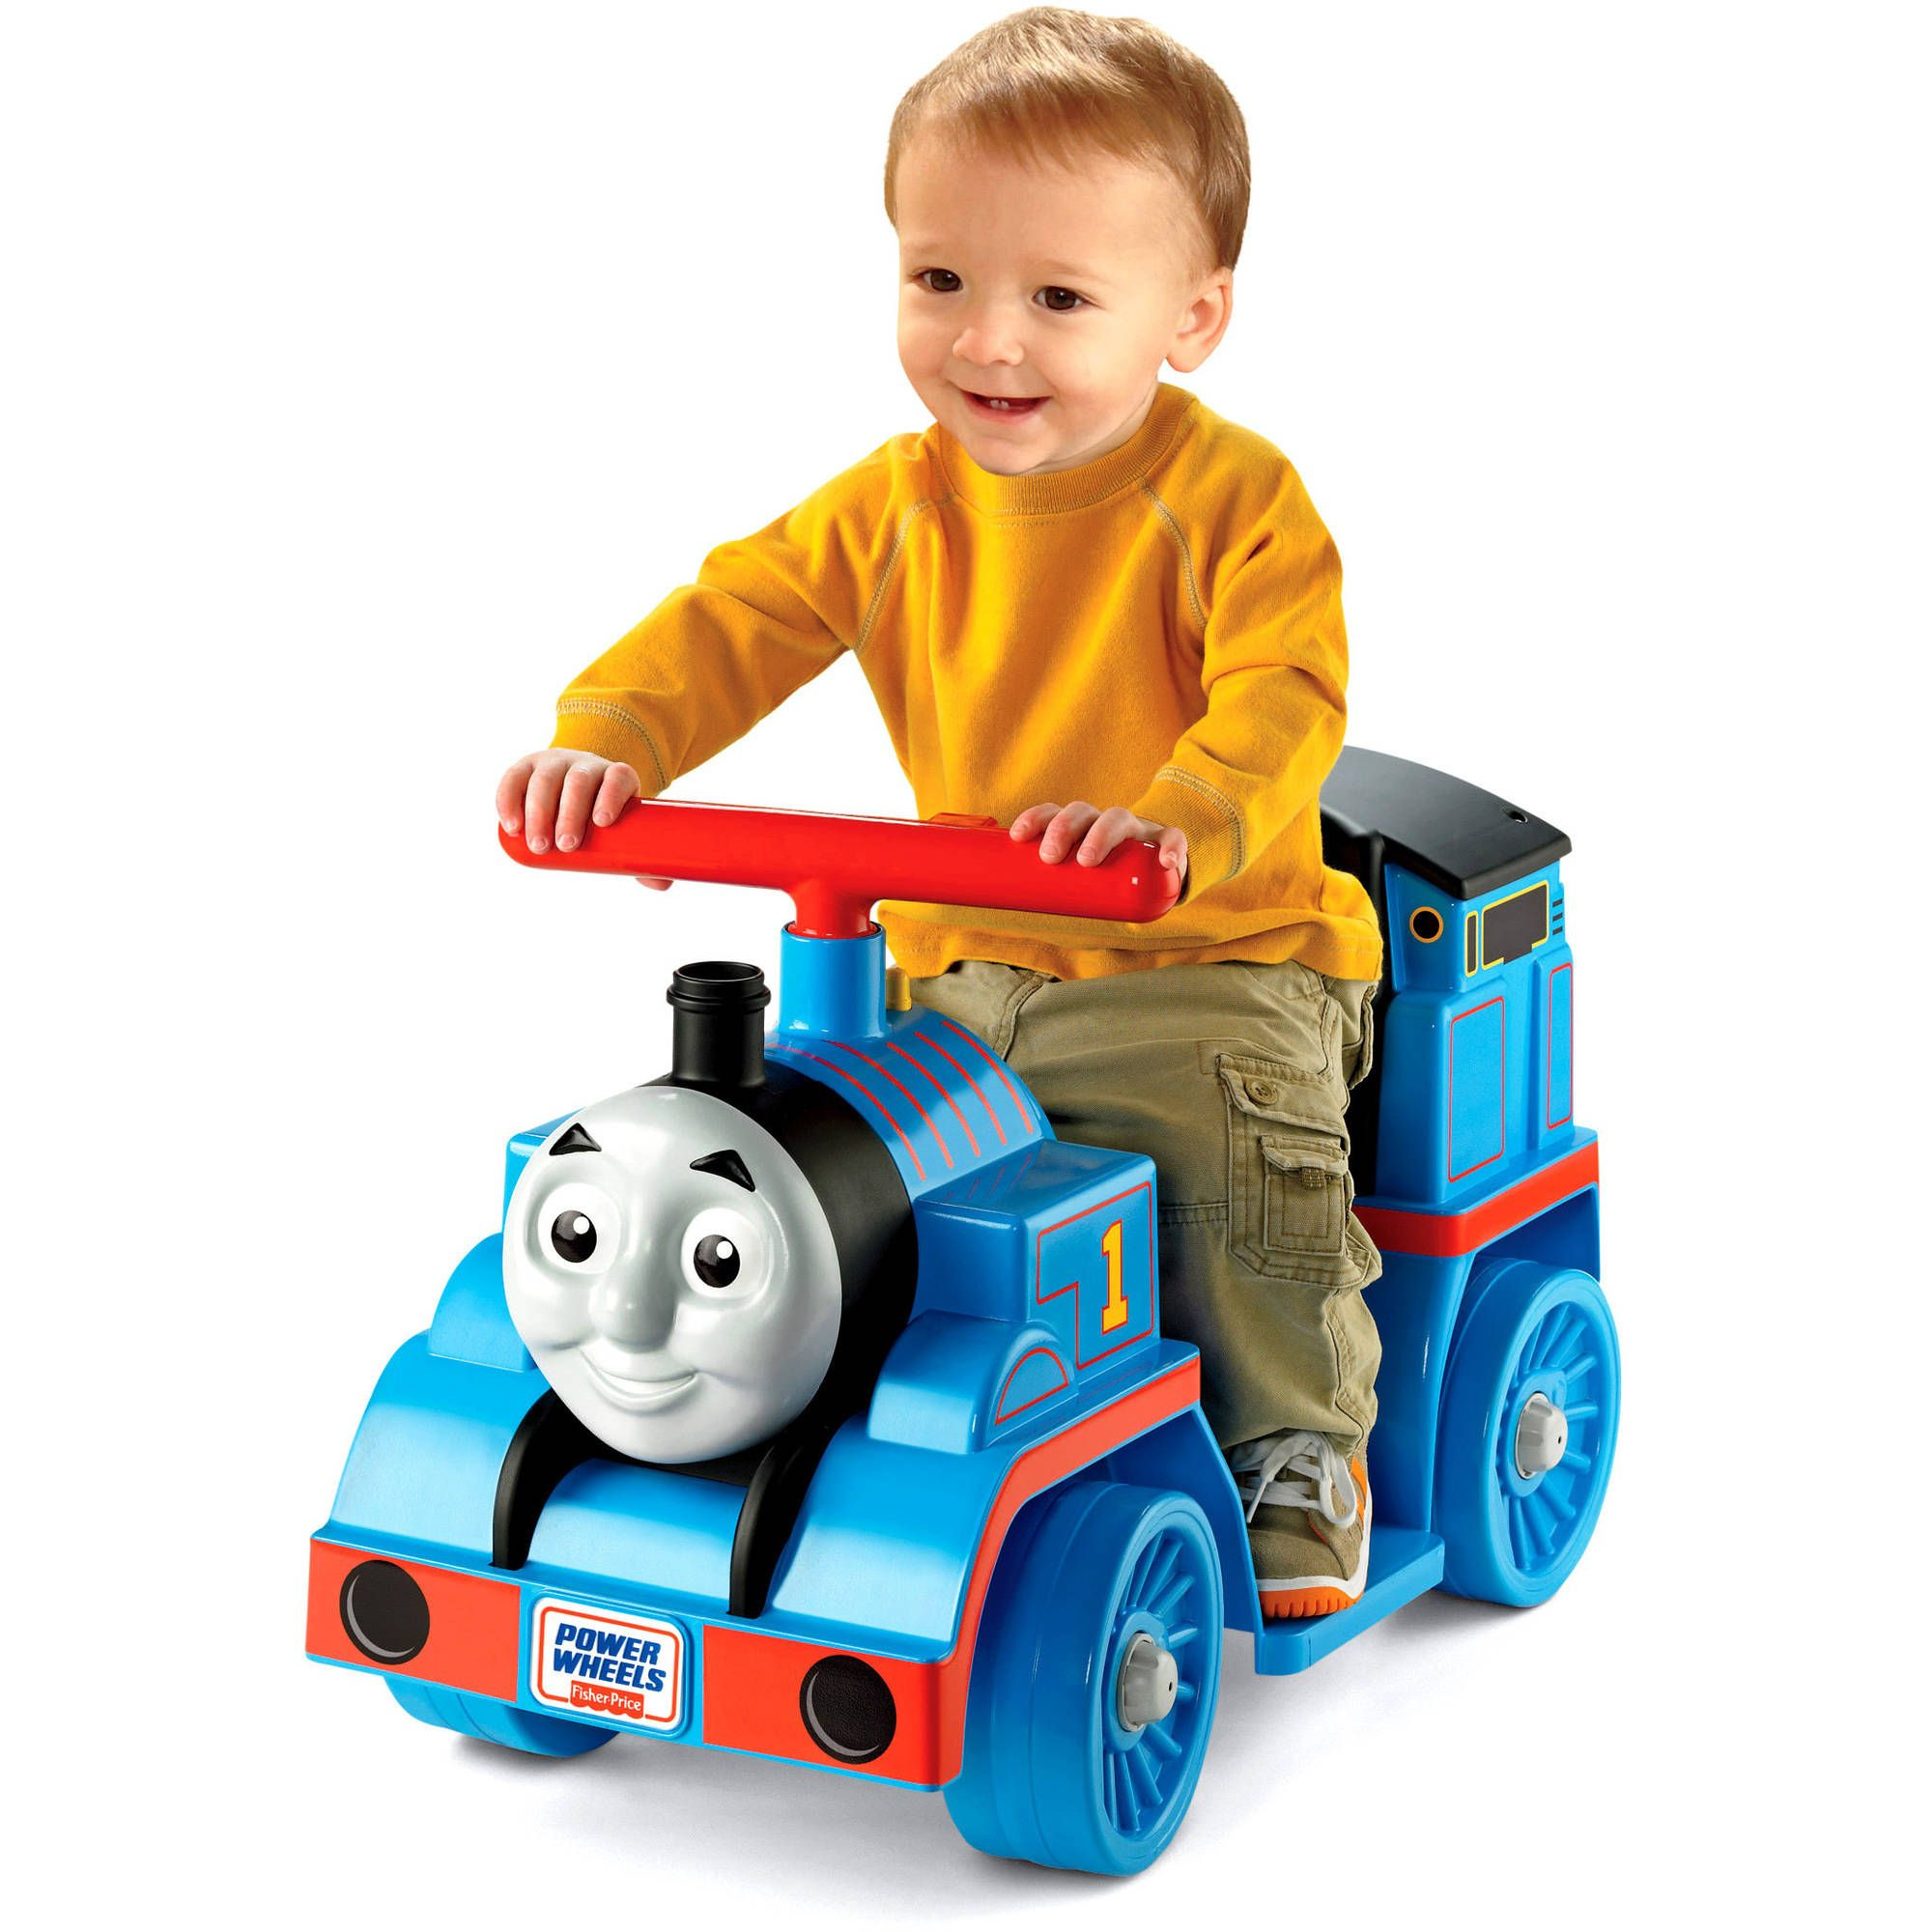 Find And Shopping More Children Toys Deals At Extrabigfoot